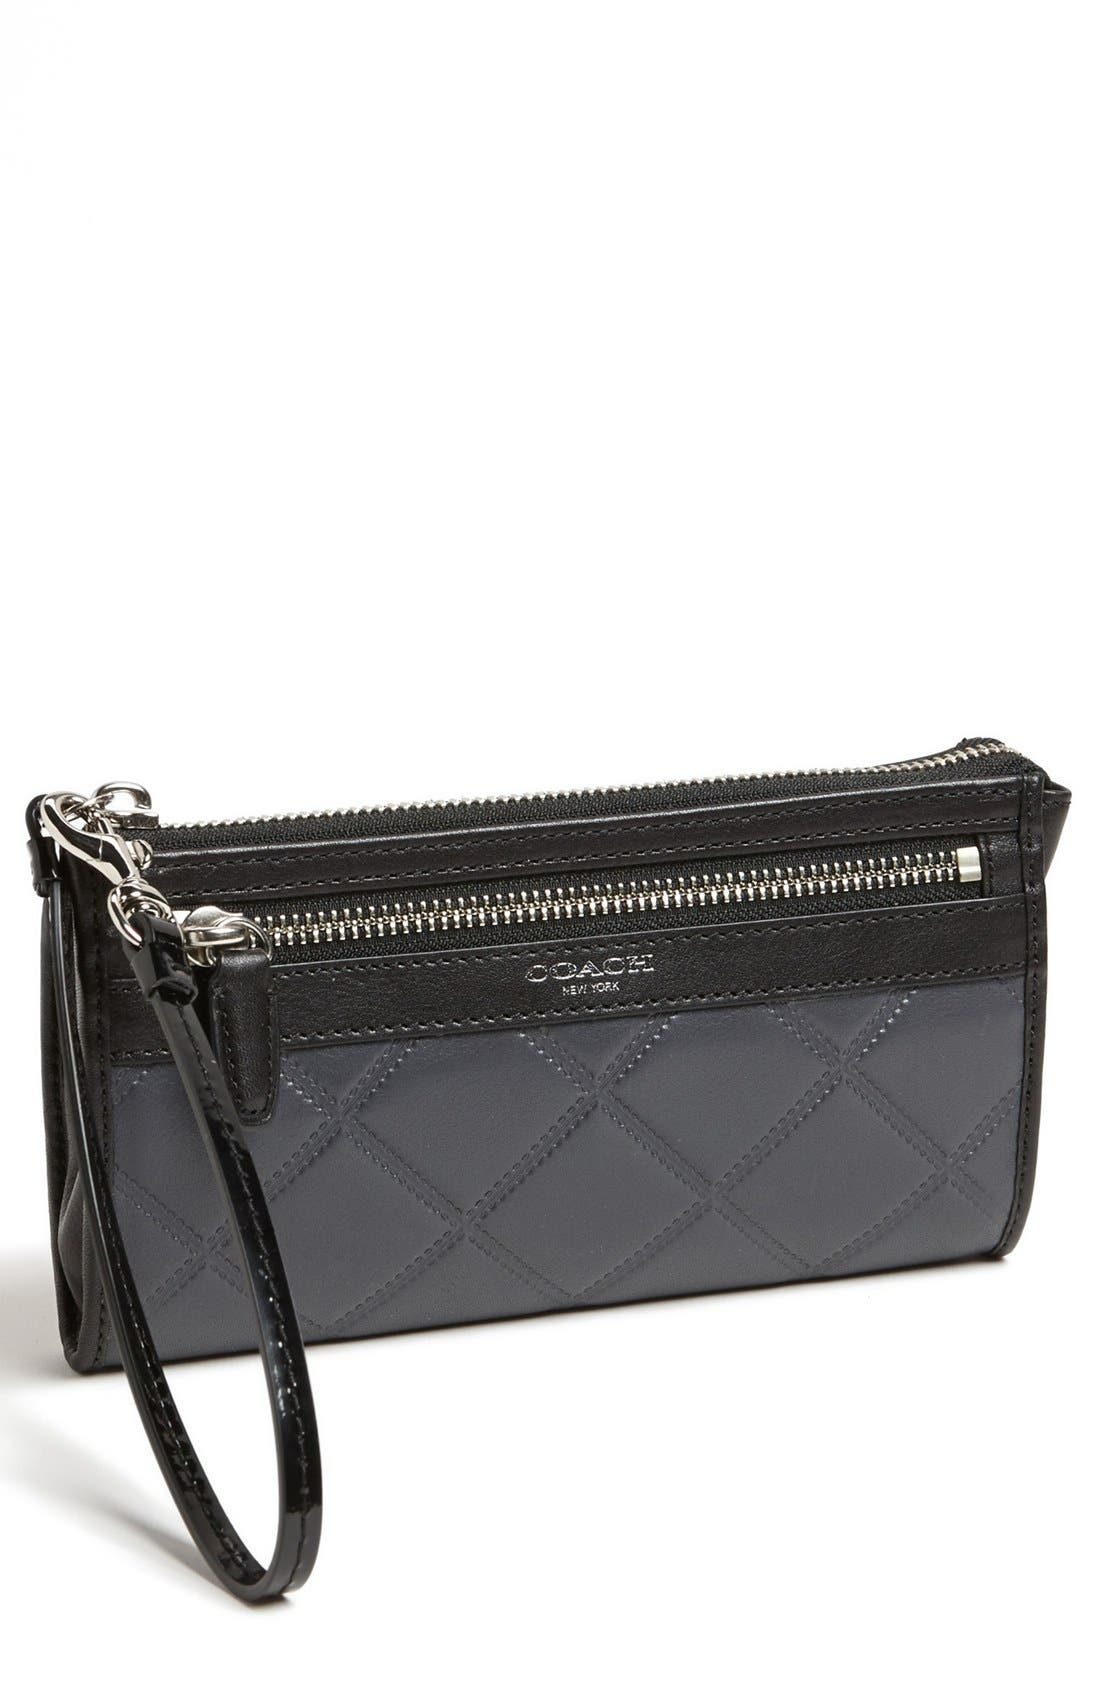 Main Image - COACH 'Legacy - Zippy' Quilted Leather Wallet